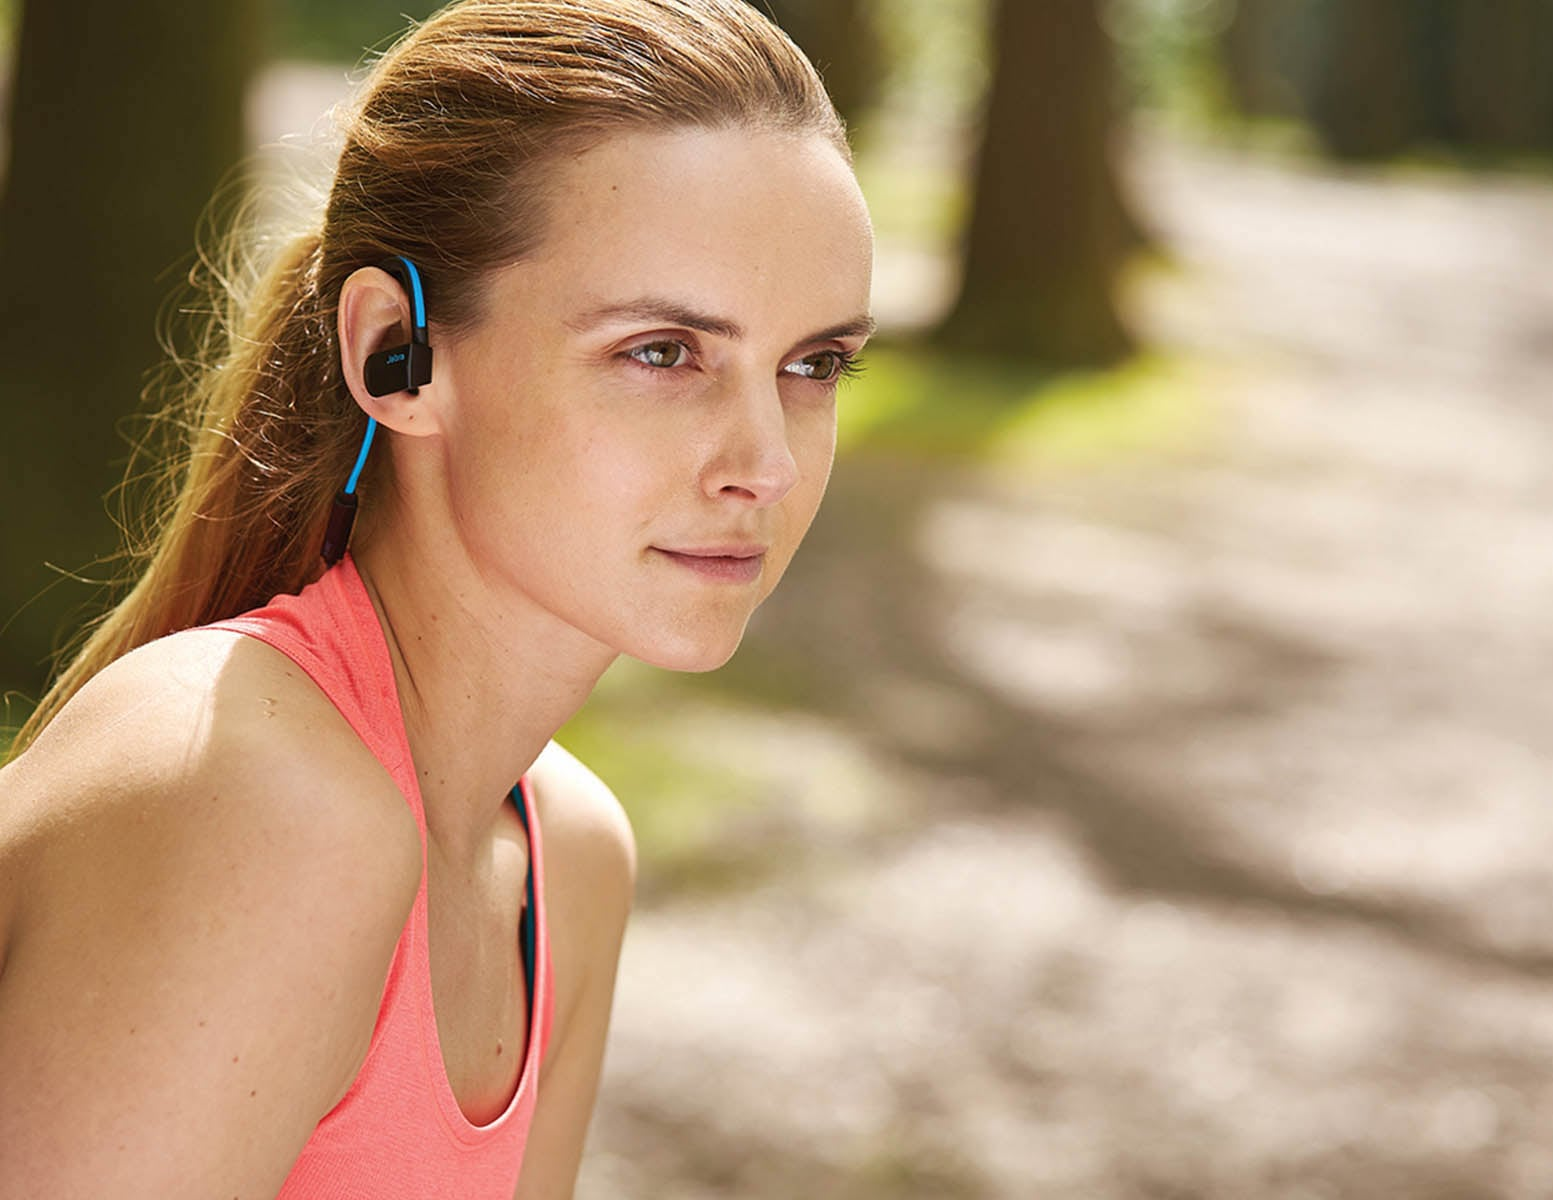 Jabra Sport Pace Wireless Sports Earbuds offer more freedom during your workouts